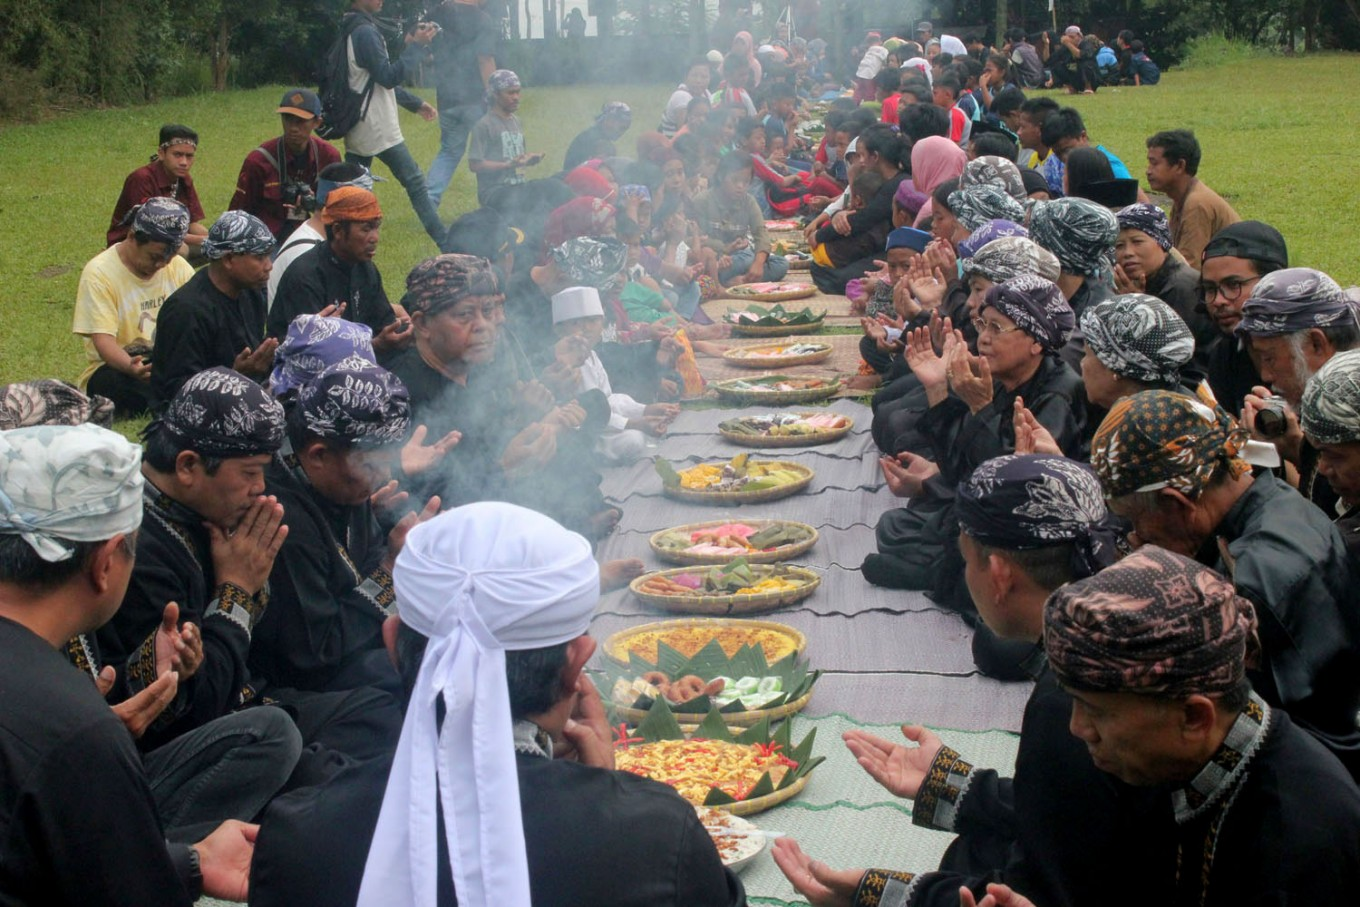 Sindangbarang community leaders and residents pray together before they eat various foods served in the Sedekah Kue [cake offering] ceremony. Everyone brings food from their homes and they eat it together in the ceremony. JP/ Theresia Sufa